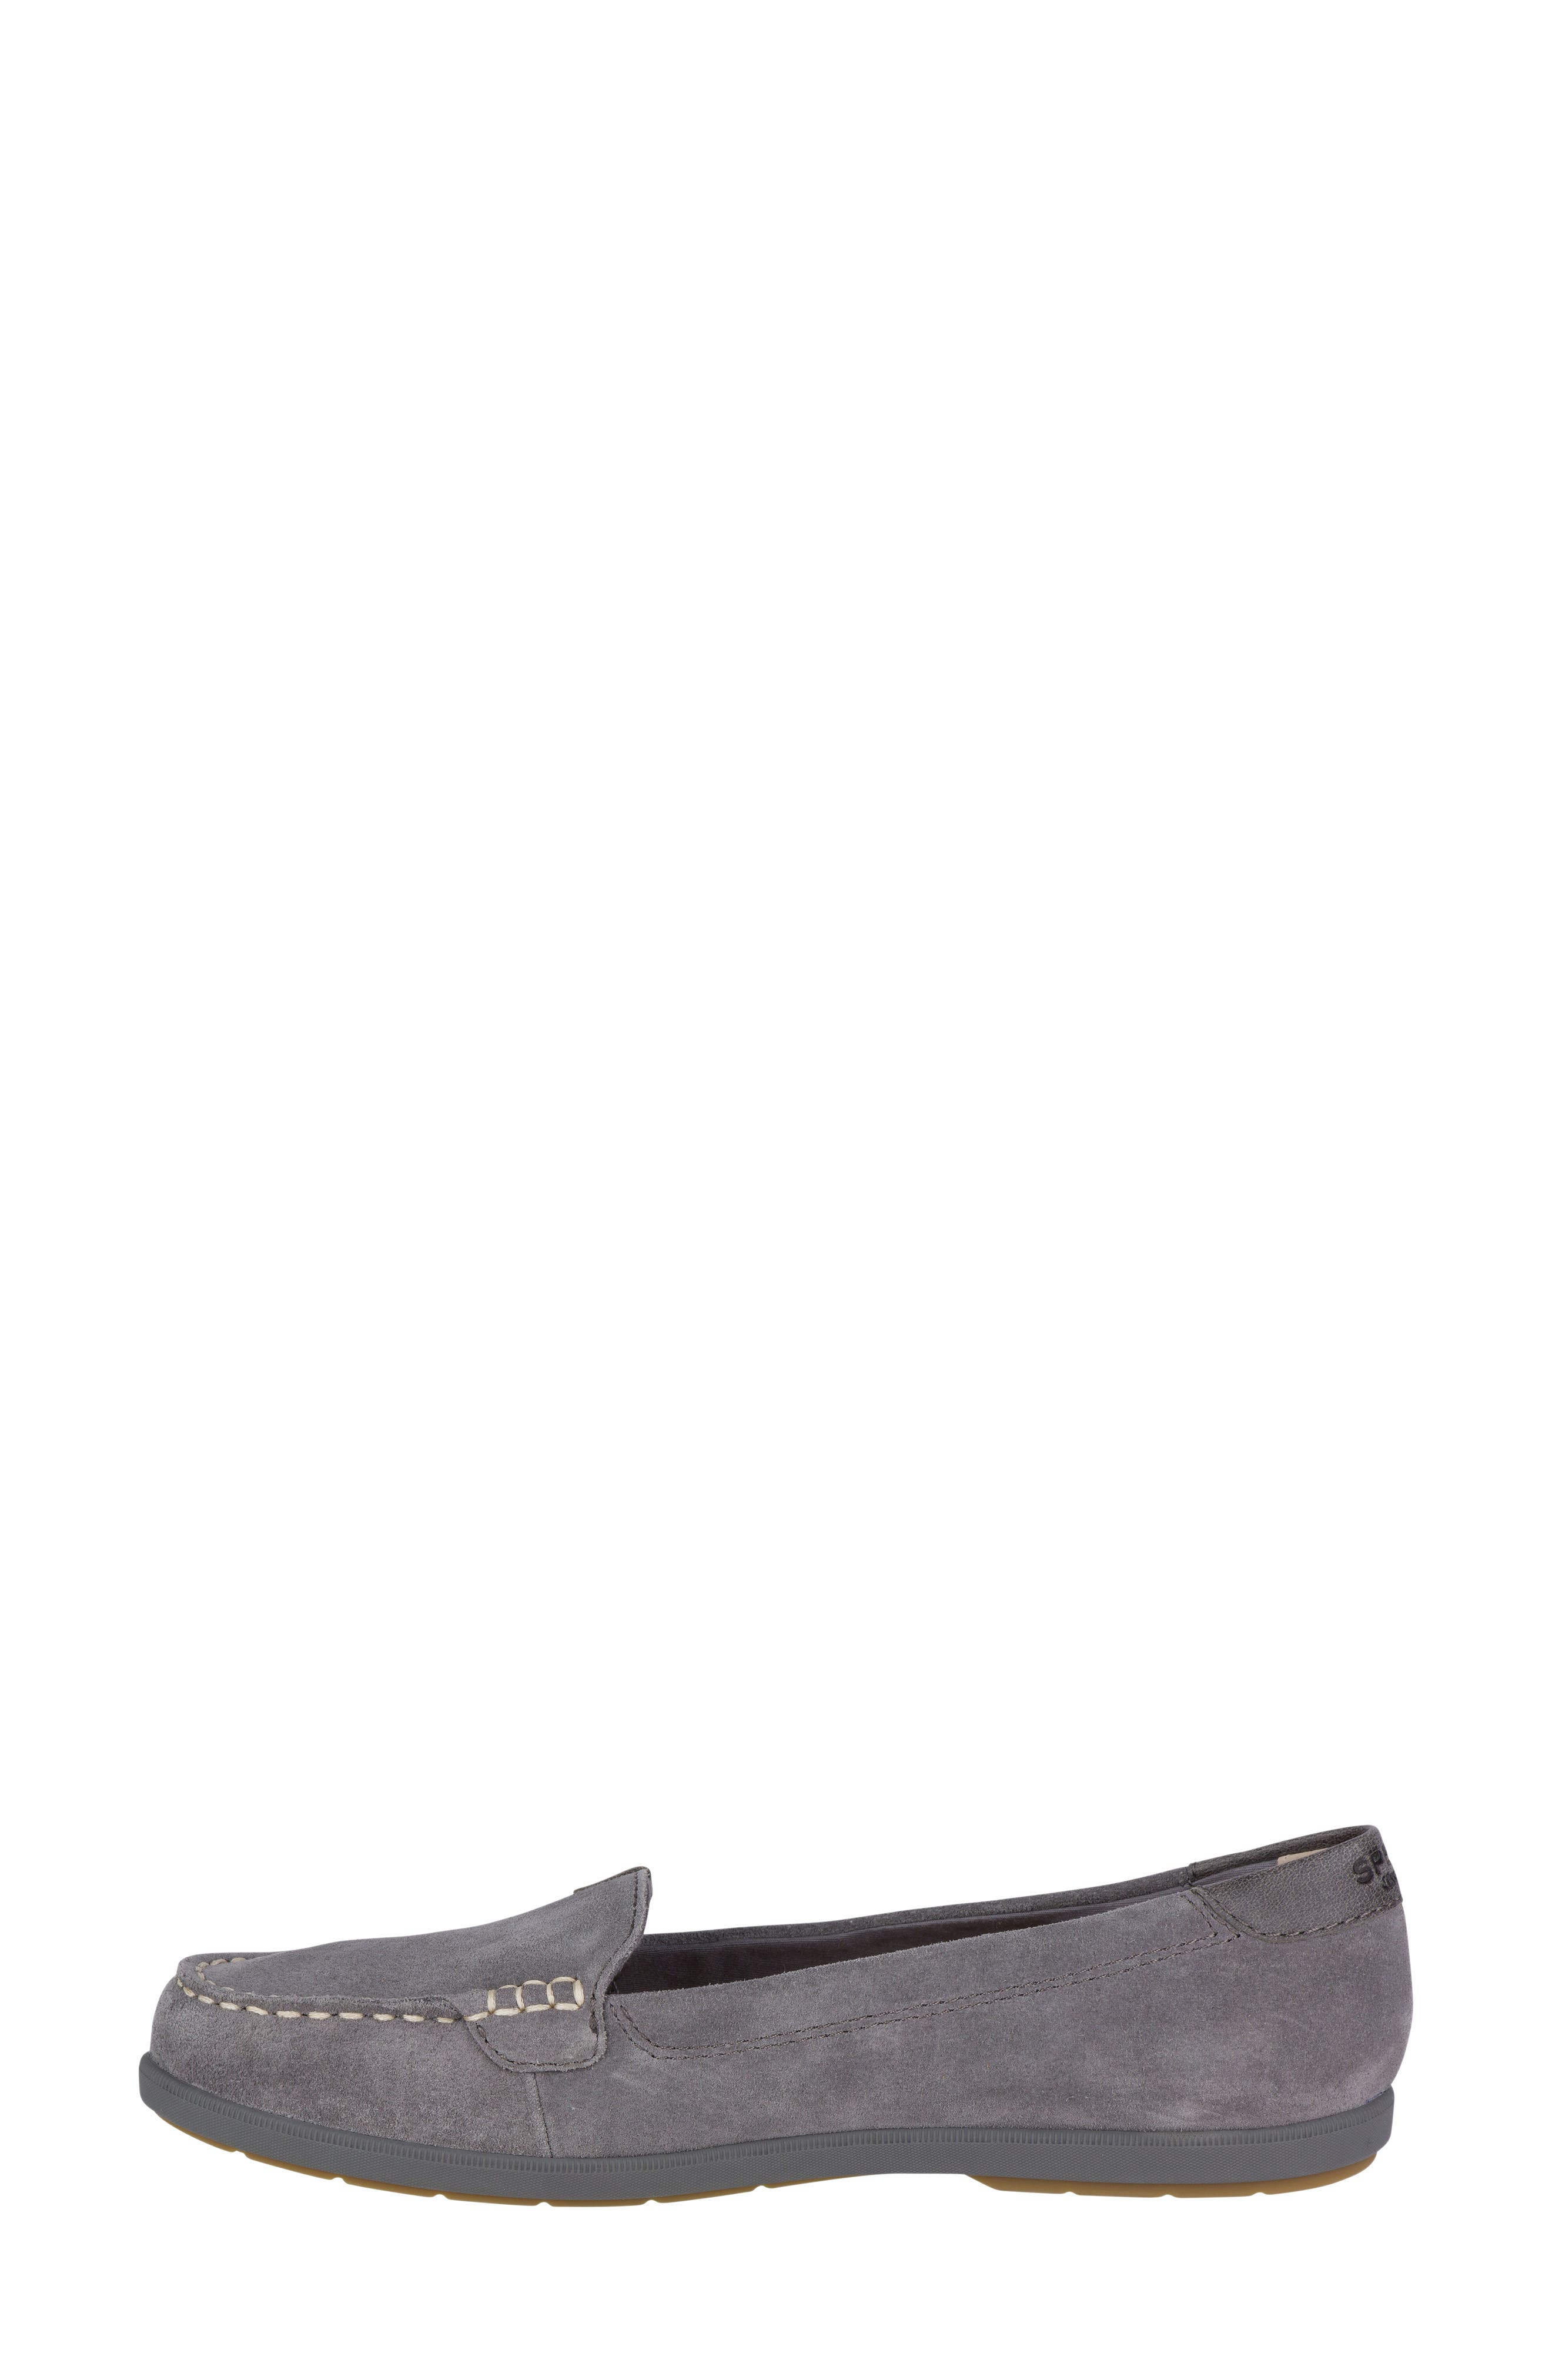 Coil Mia Loafer,                             Alternate thumbnail 11, color,